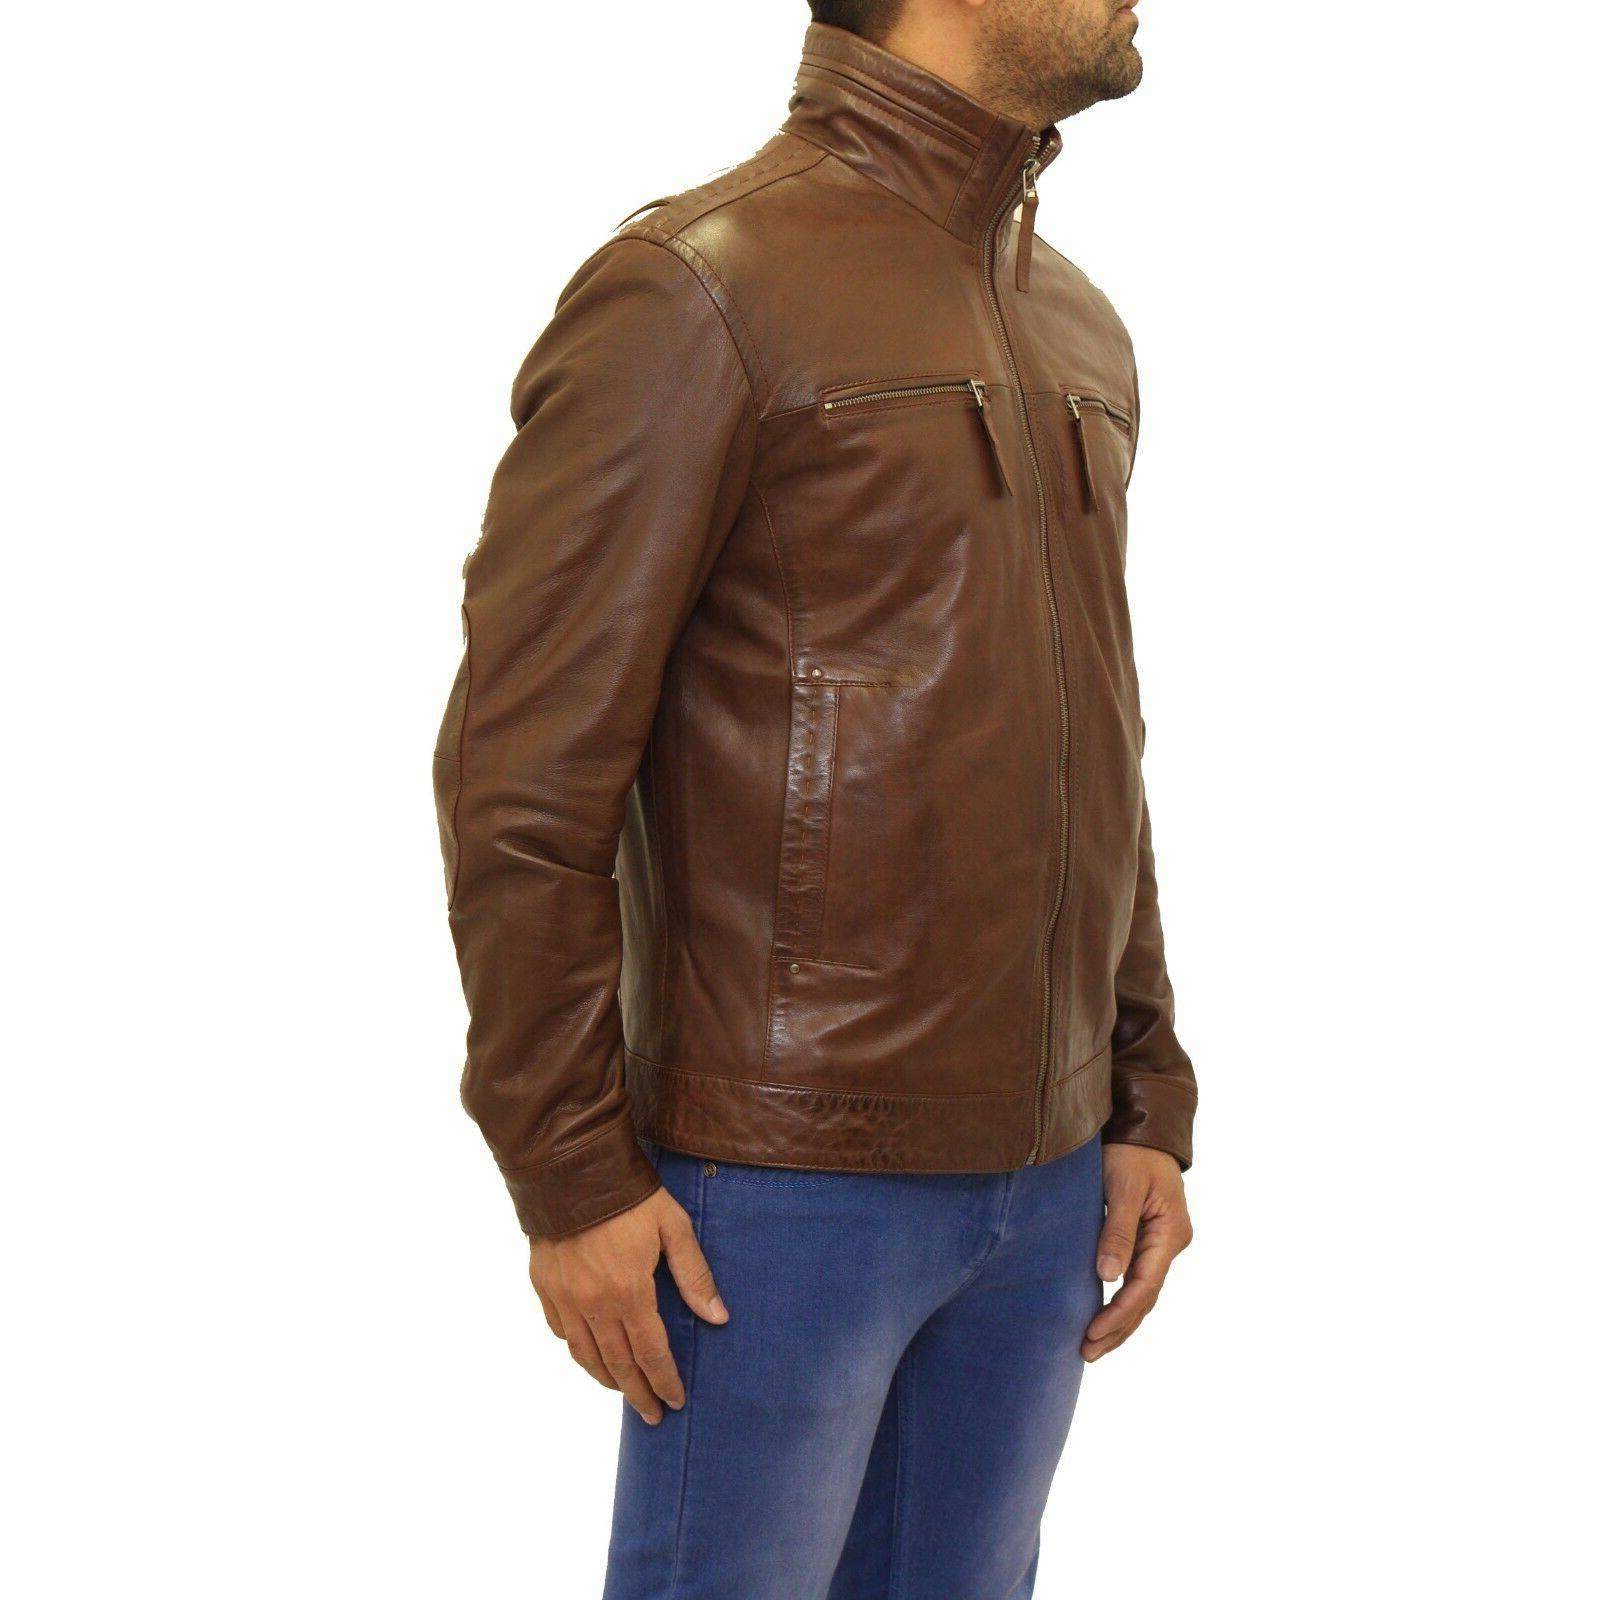 Mens New Chestnut Italian Leather Casual Long